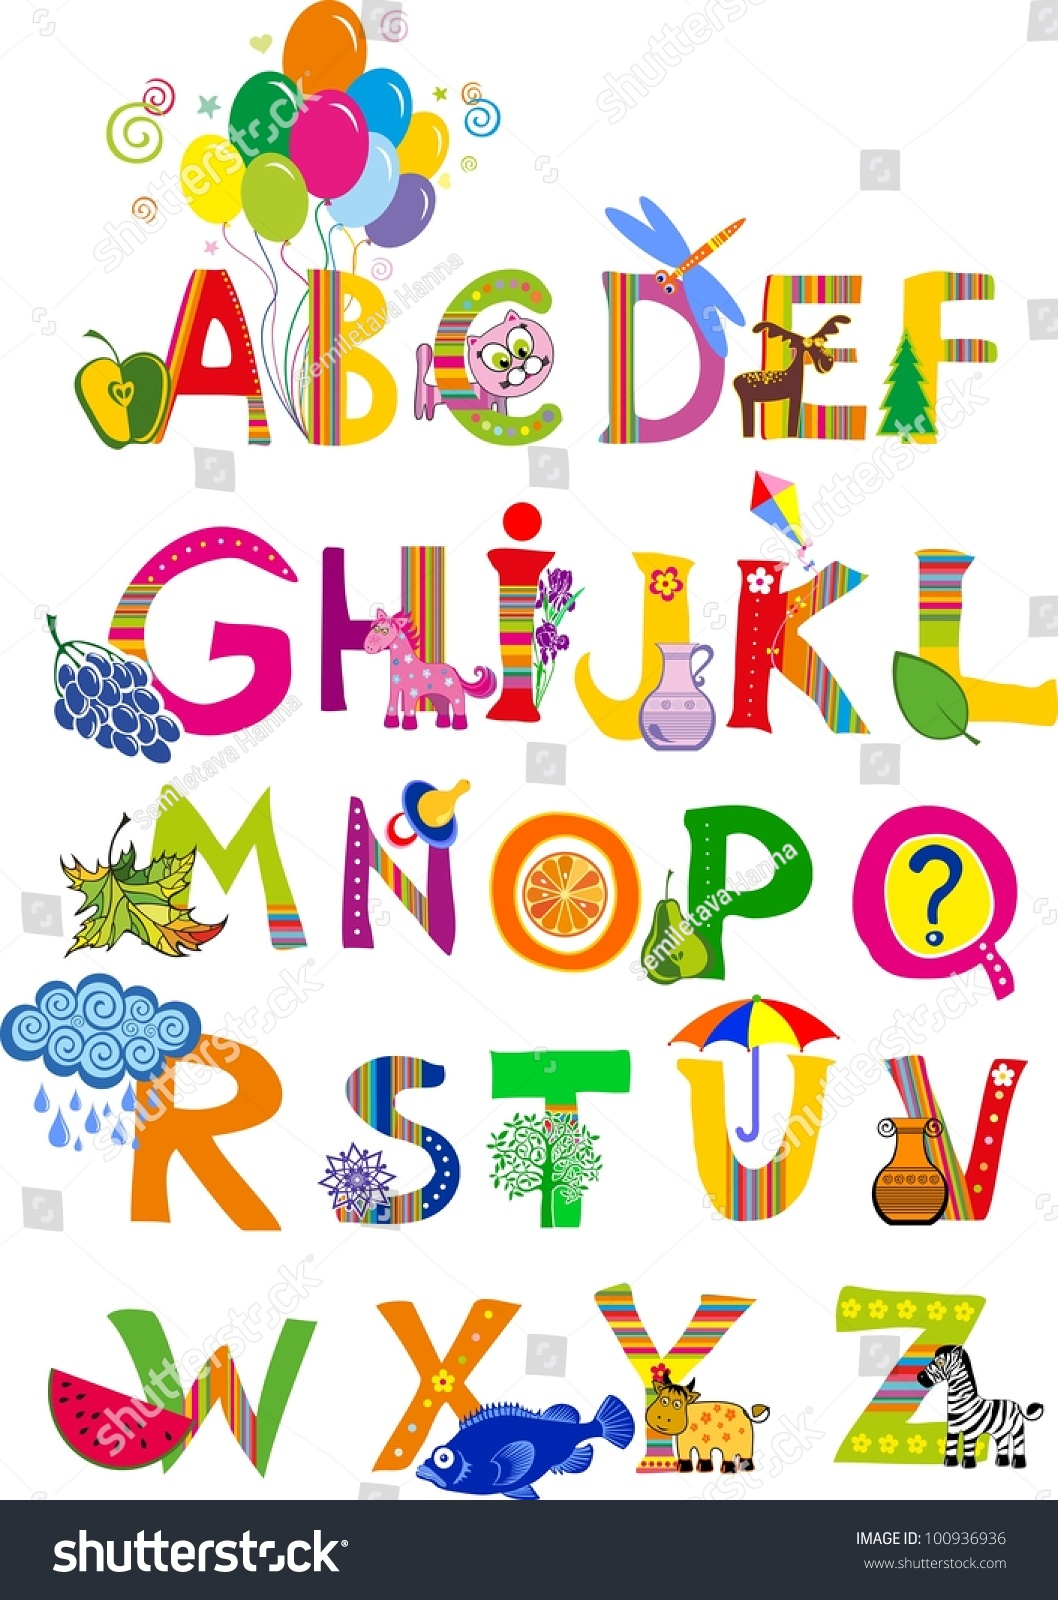 Gallery For gt Abc Letters Design